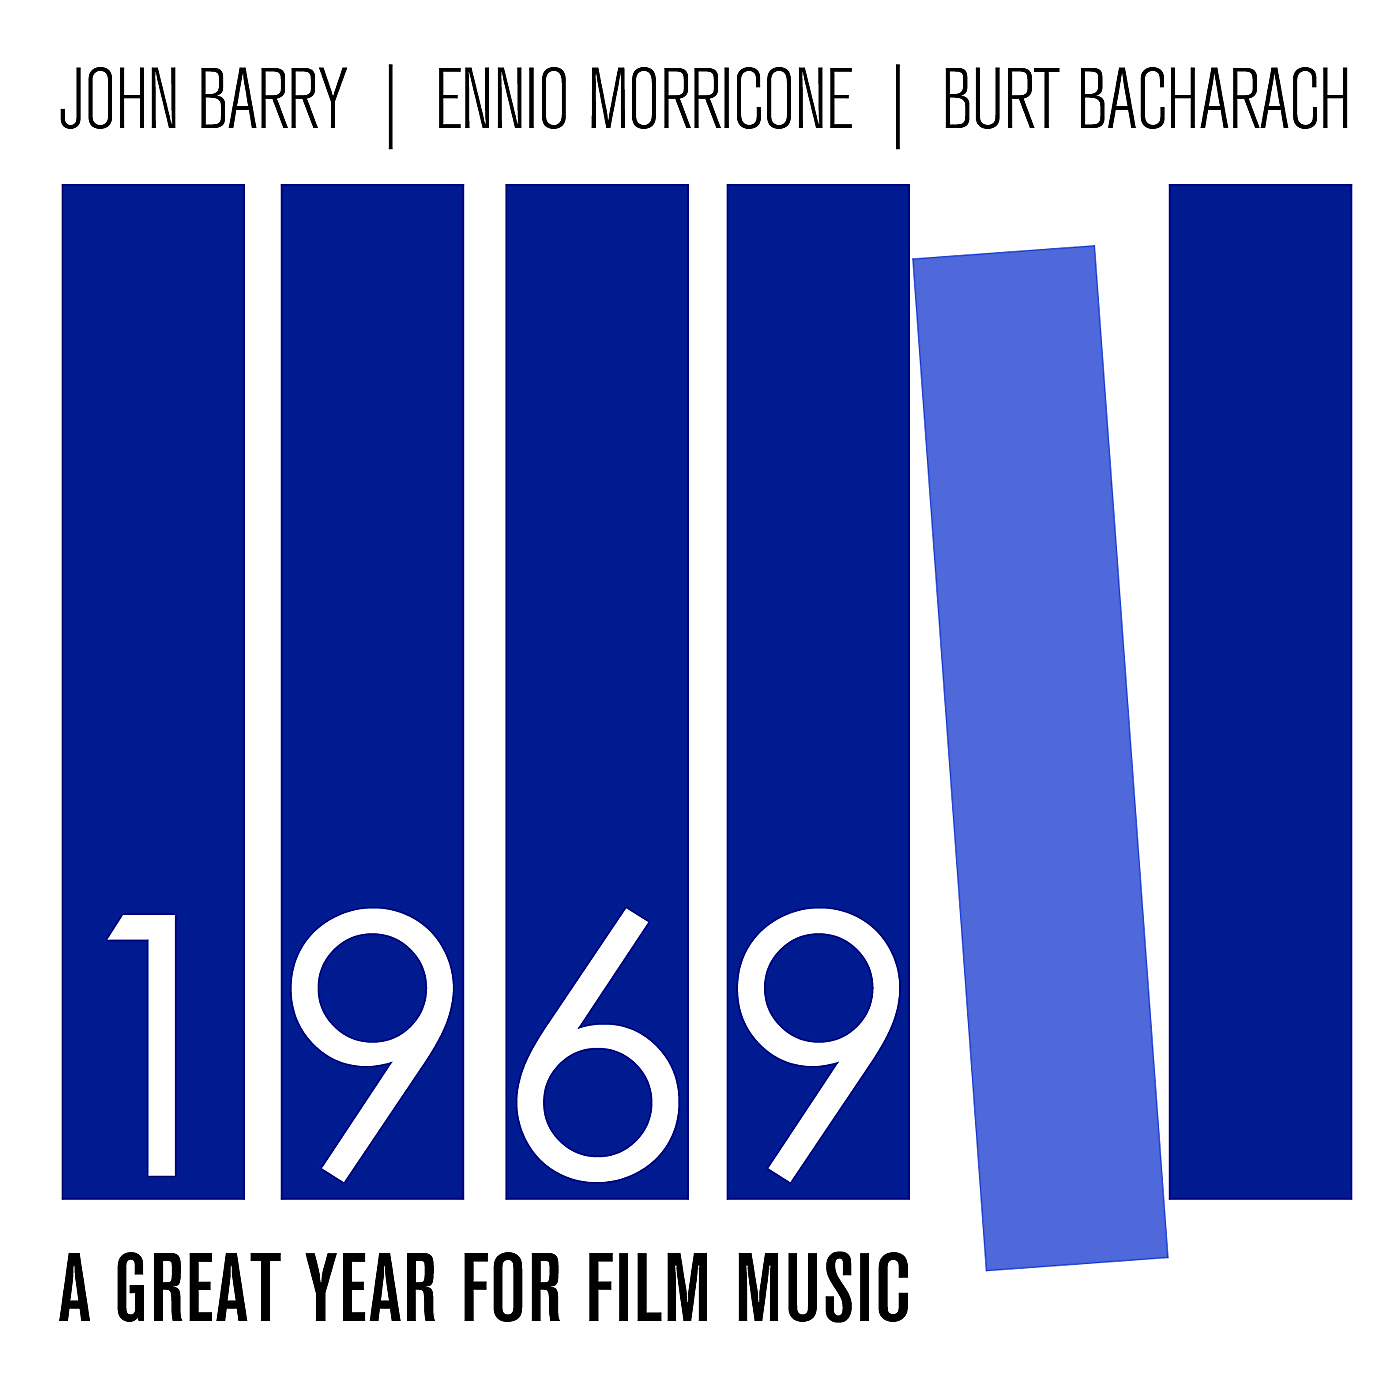 1969 - A Great Year for Film Music